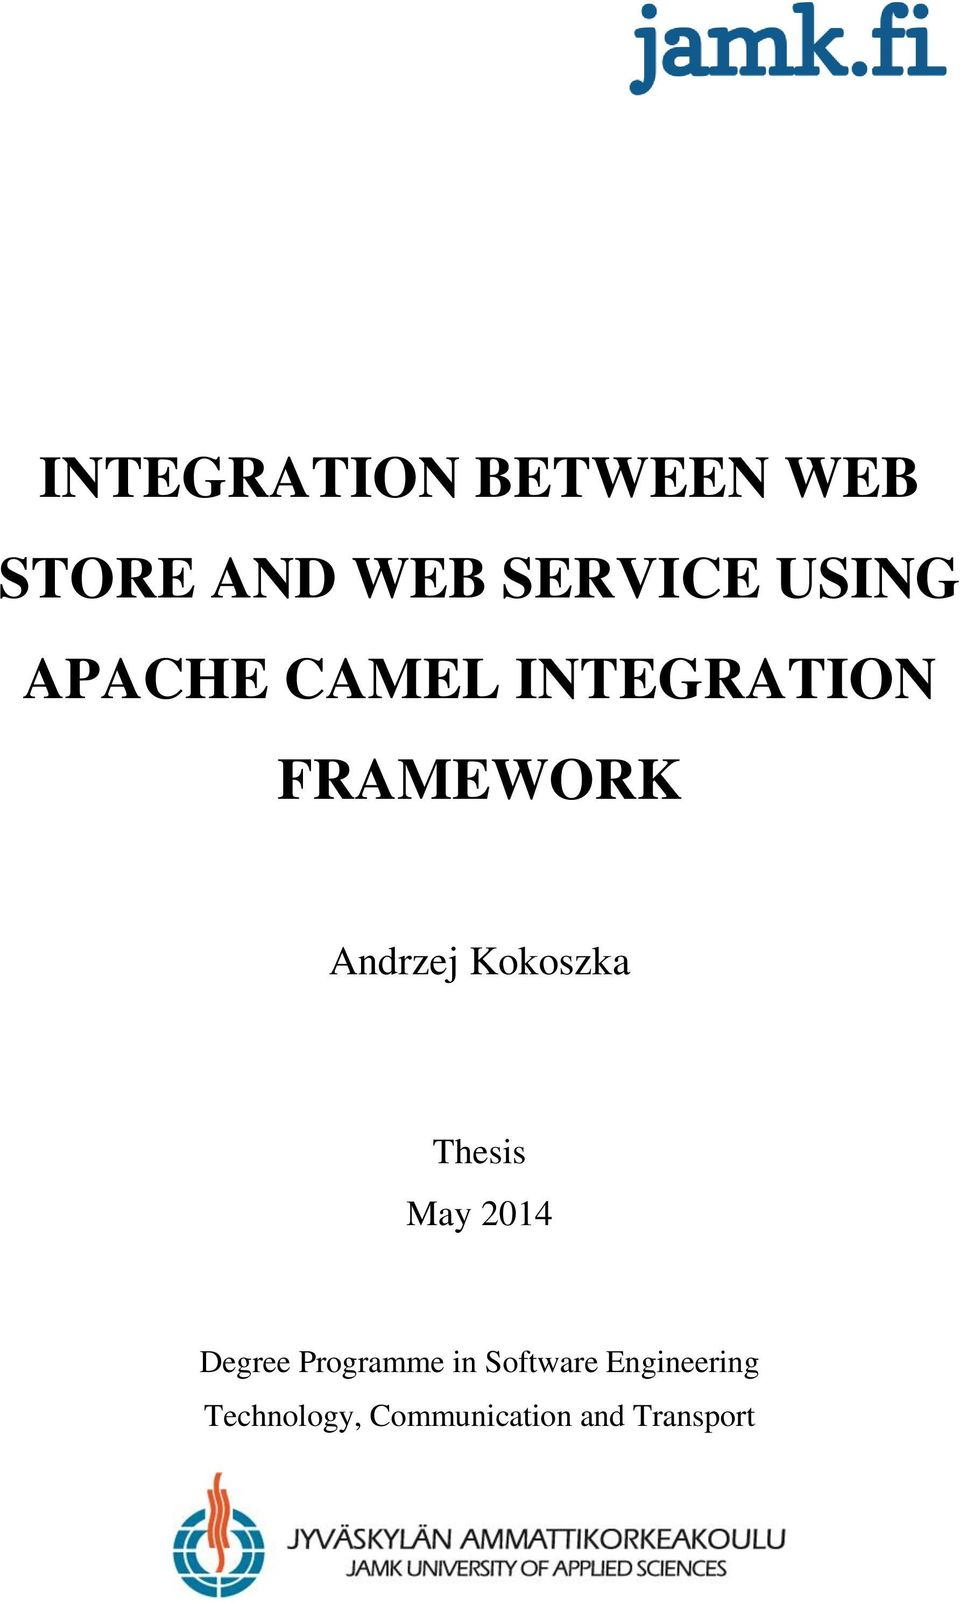 INTEGRATION BETWEEN WEB STORE AND WEB SERVICE USING APACHE CAMEL